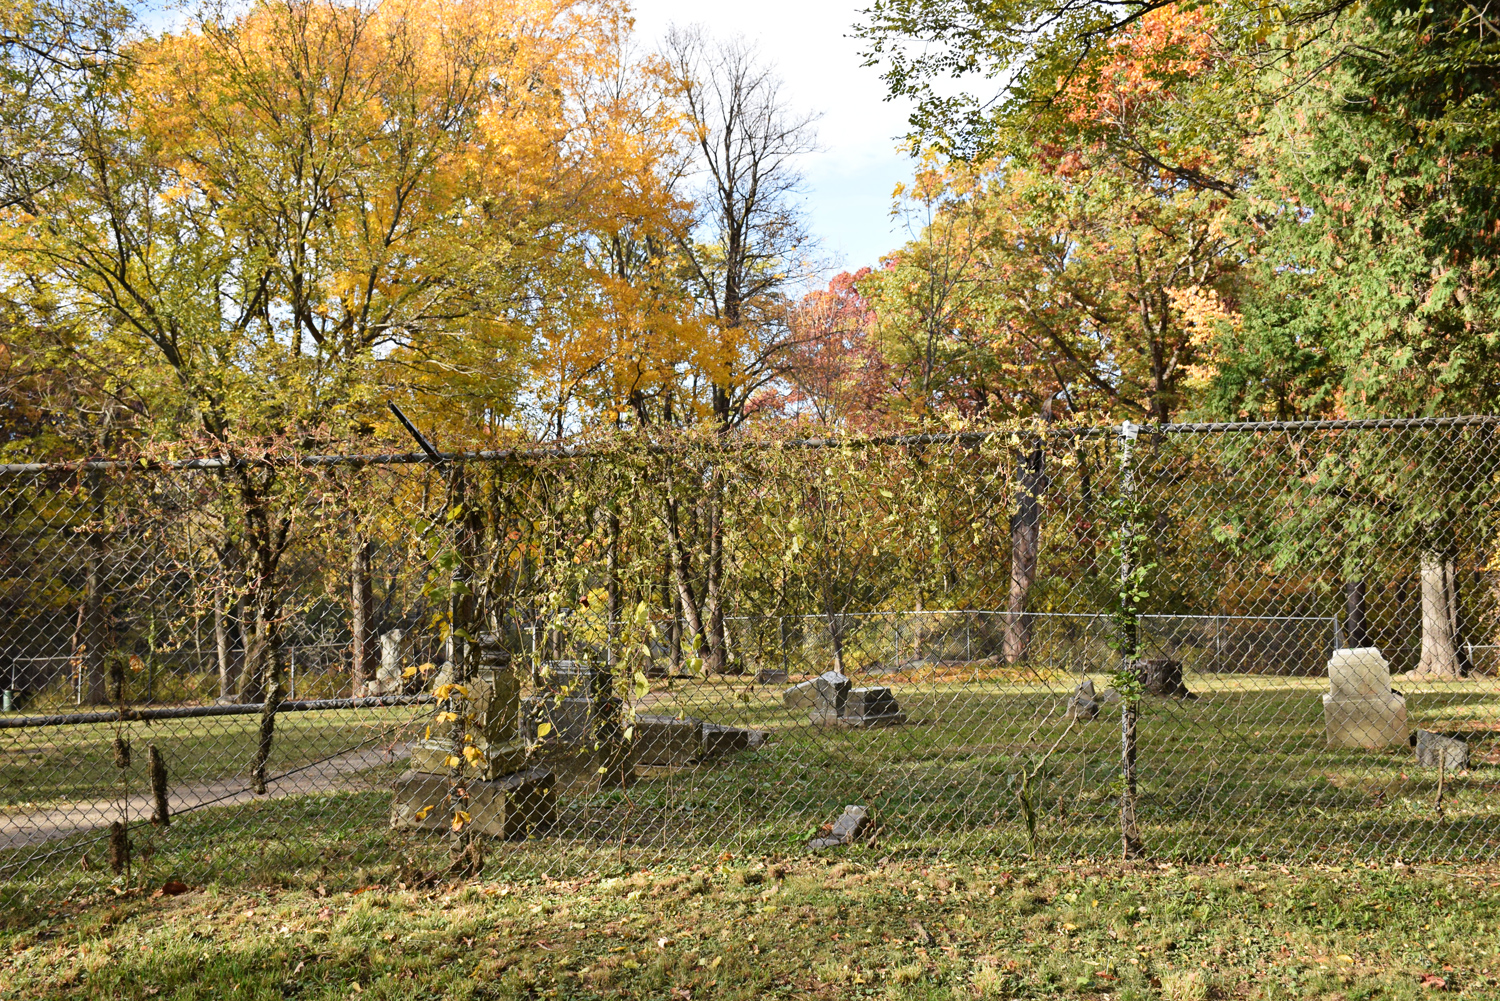 Fall cemetery by Allison Beth Cooling